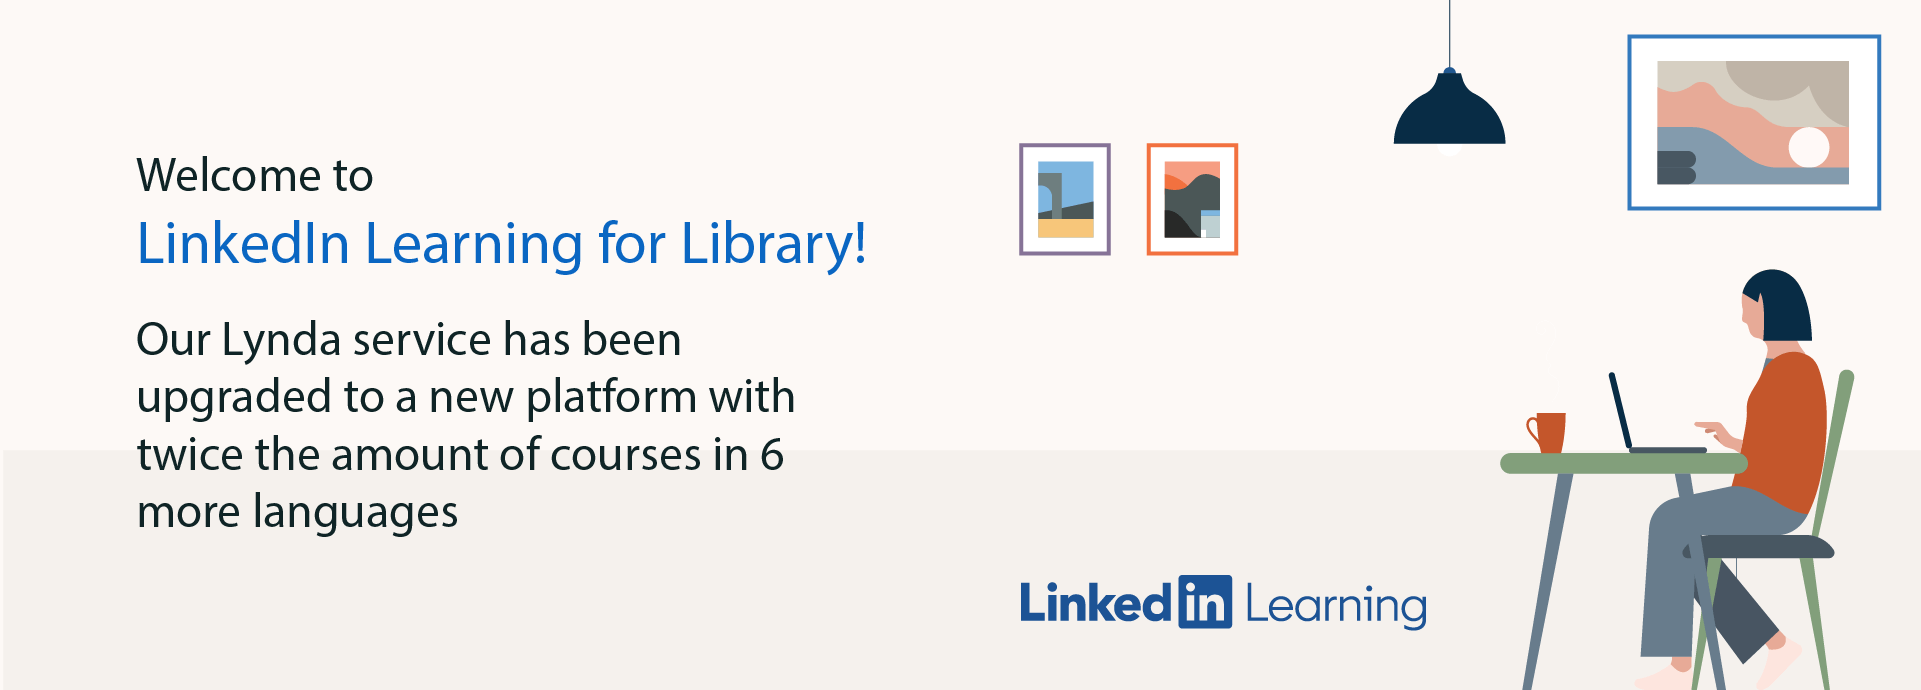 LinkedIn Learning for Libraries